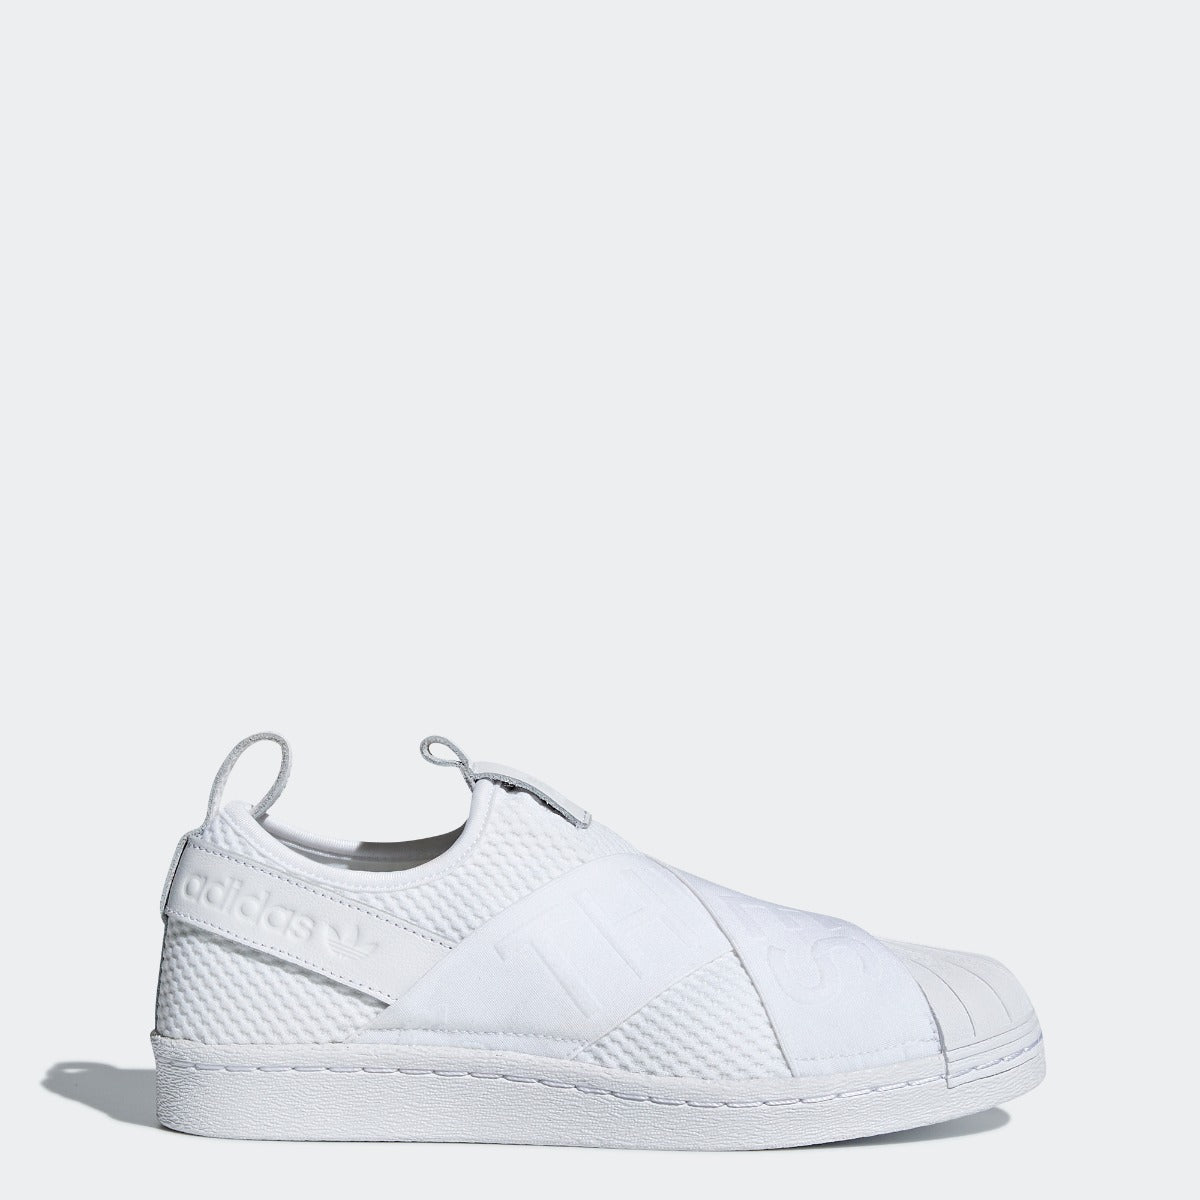 online store b5156 456c1 adidas Superstar Slip-On Shoes All White CQ2381 | Chicago ...